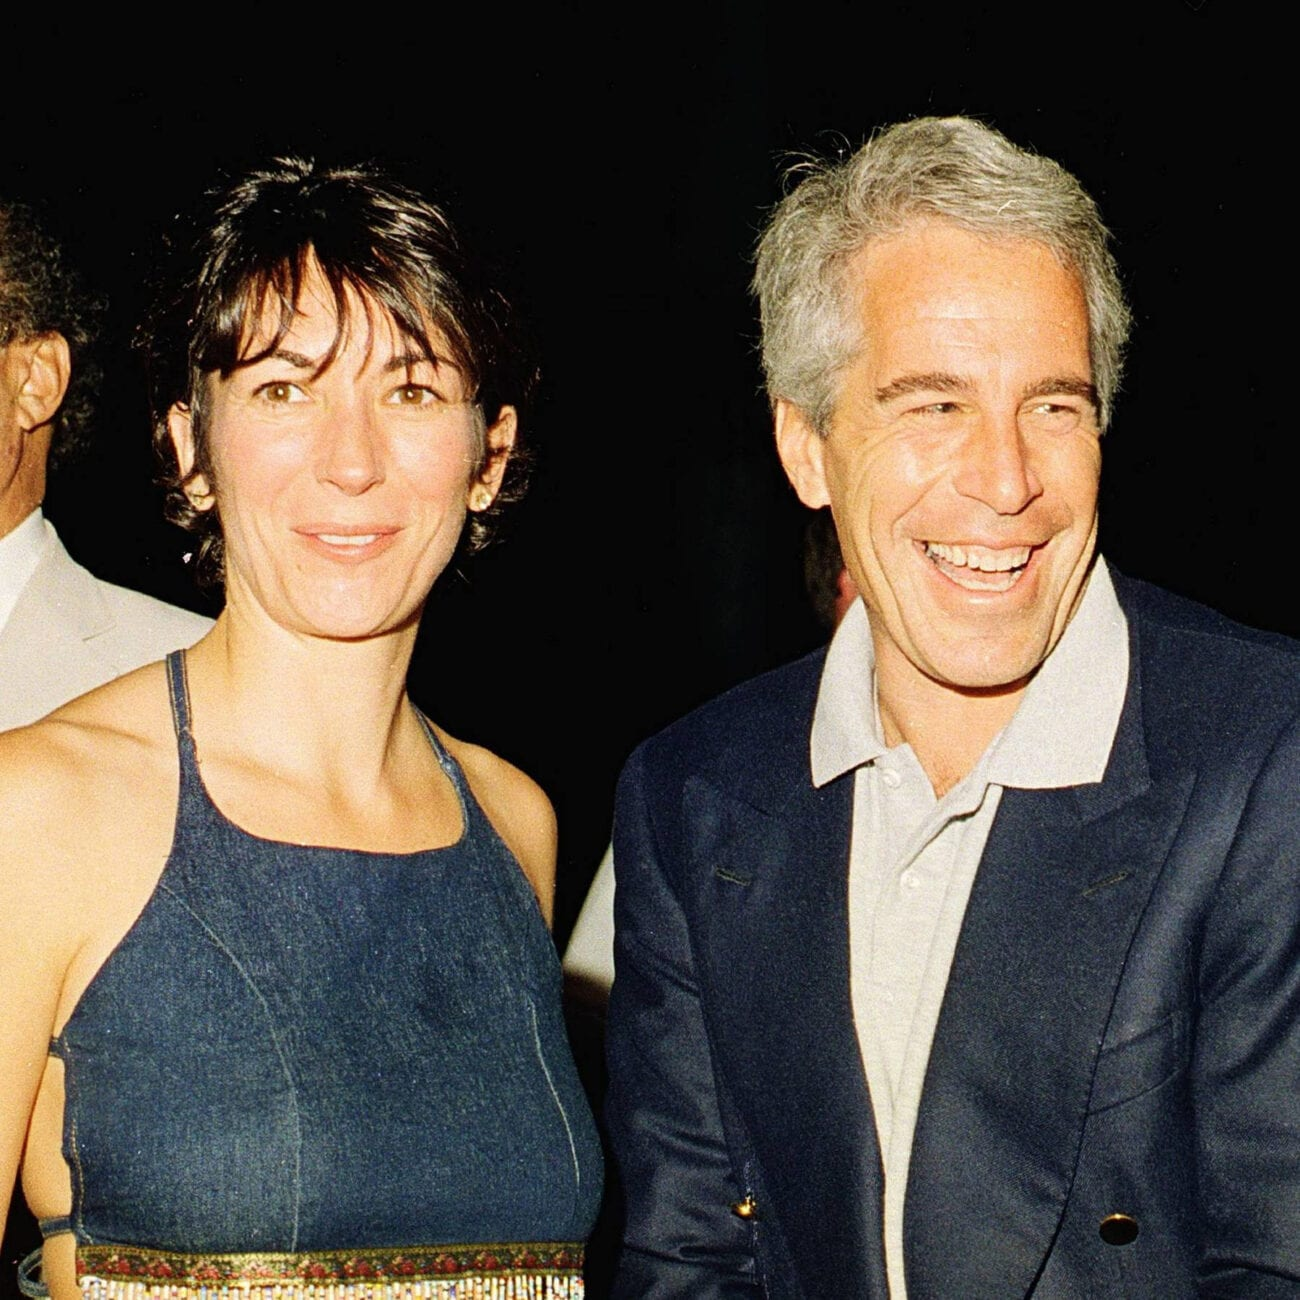 New victims emerged in the Jeffrey Epstein case, some as young as eleven. Learn how the scope of Epstein's crimes is wider than previously thought.